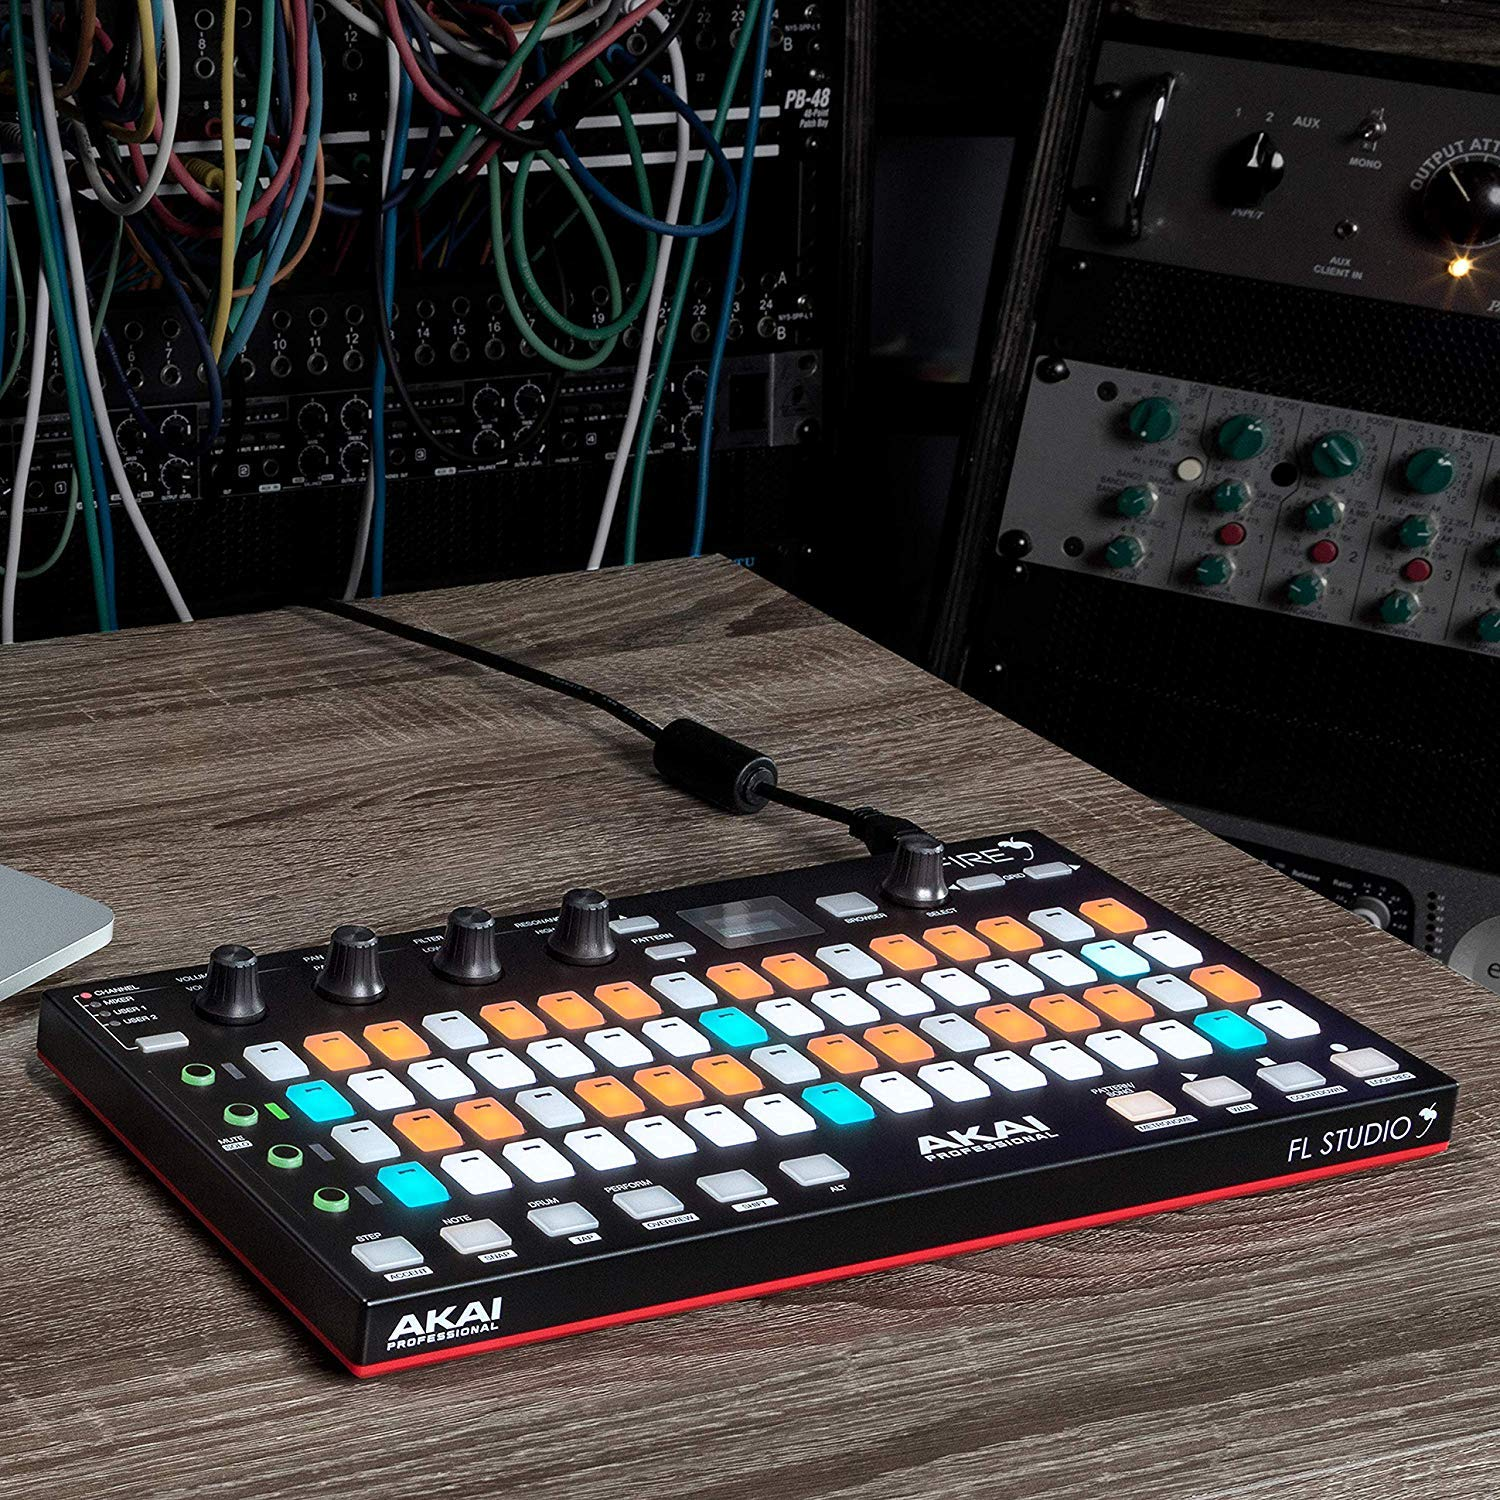 Akai Professional Fire | Performance Controller for FL Studio With 4 x 16 Velocity-Sensitive RGB Clip Matrix, OLED Display and FL Studio Fruity Fire Edition Included by Akai Professional (Image #5)